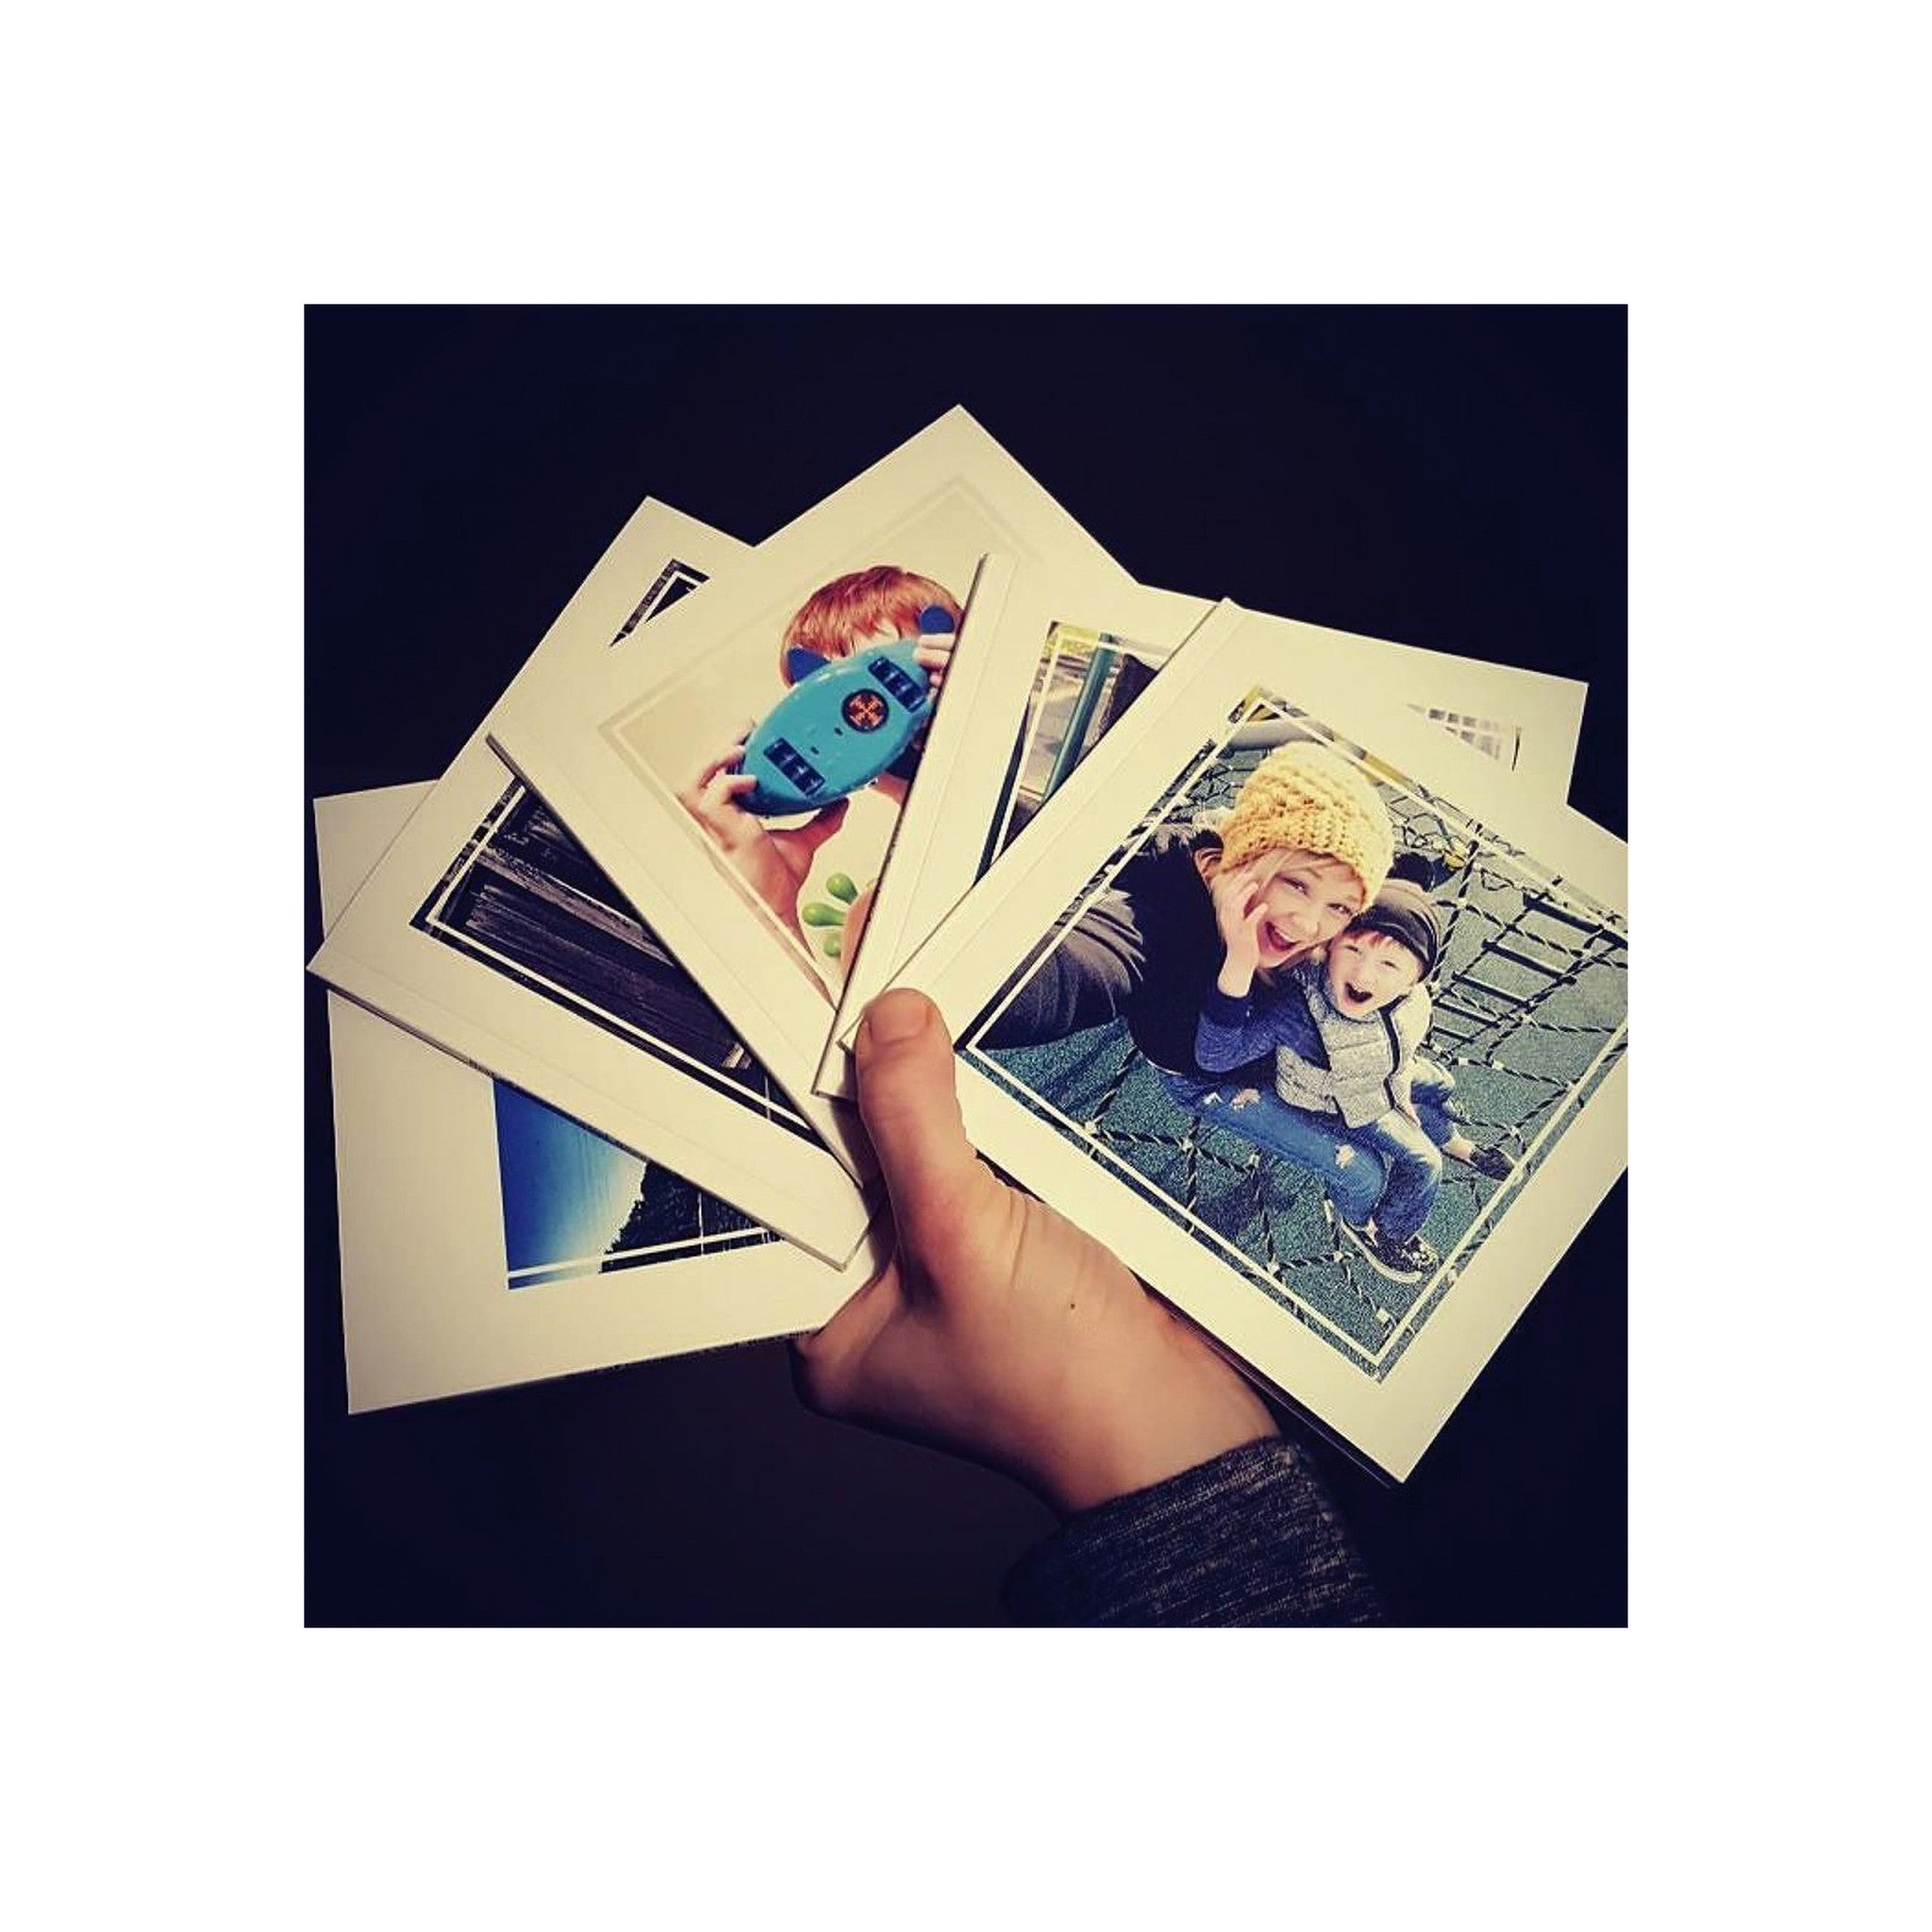 print instagram photos instagram magnets or stickers from 25¢ each